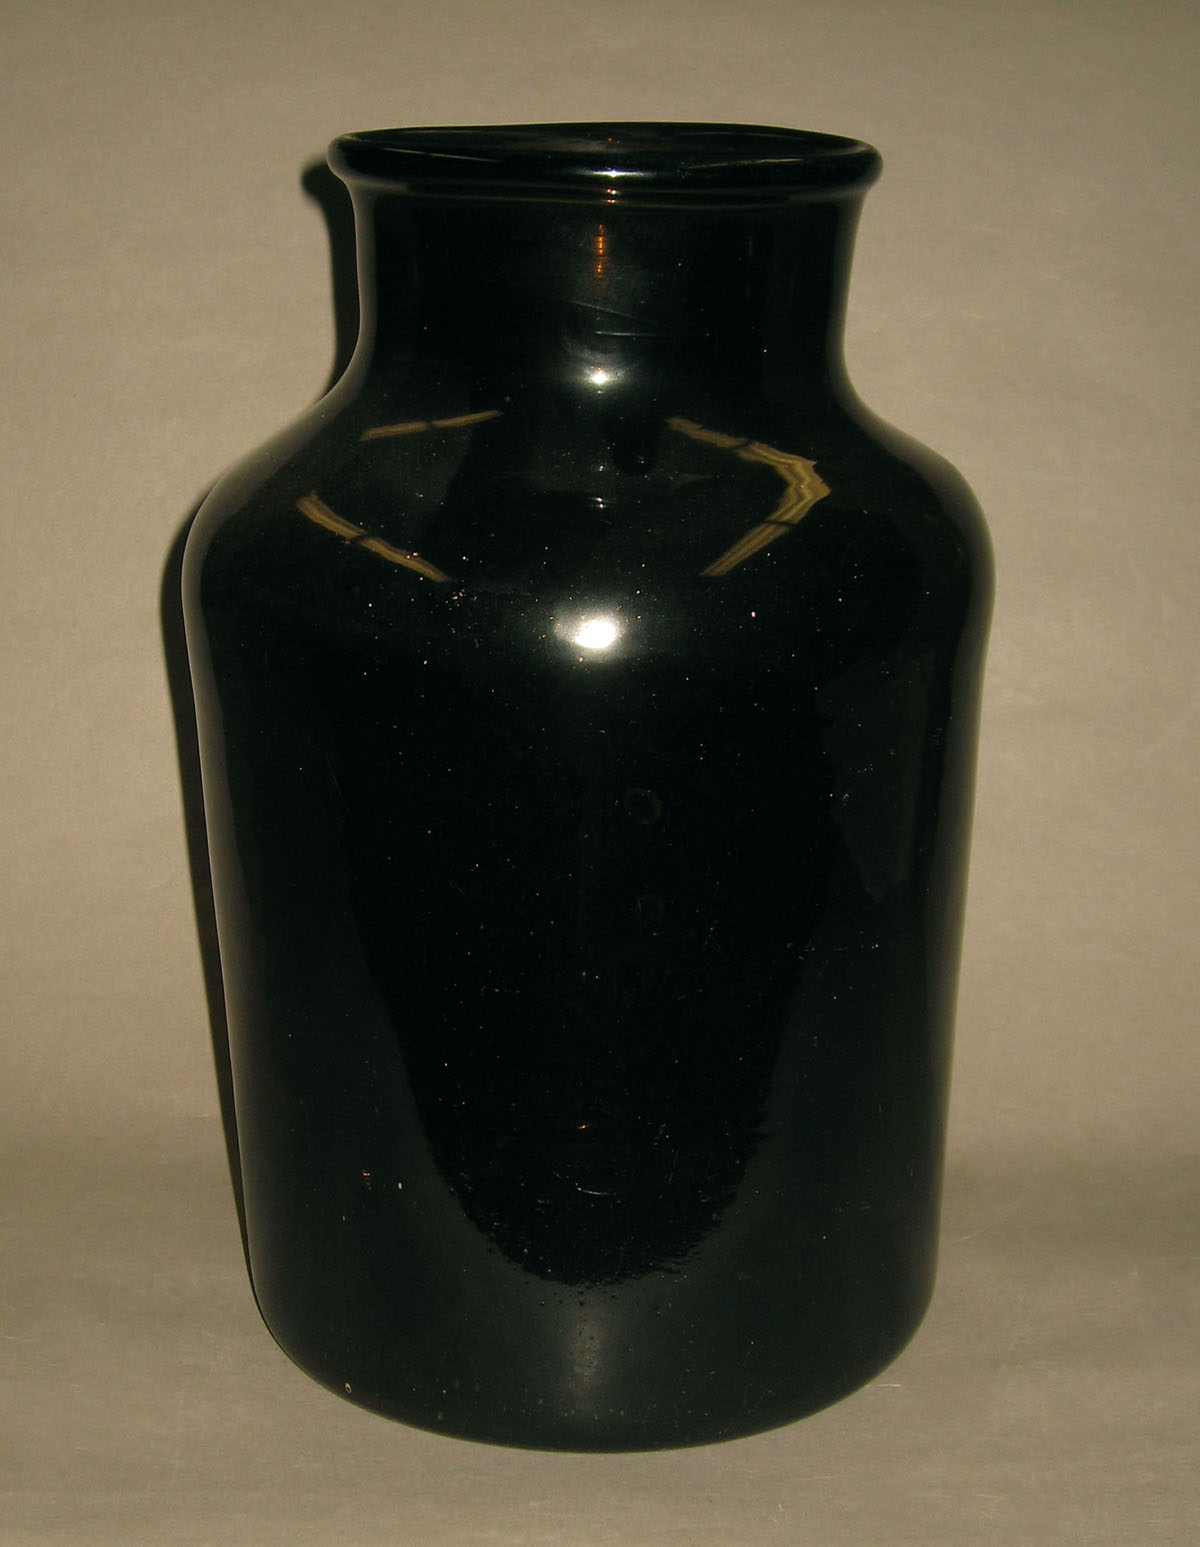 1957.0018.009 Glass jar